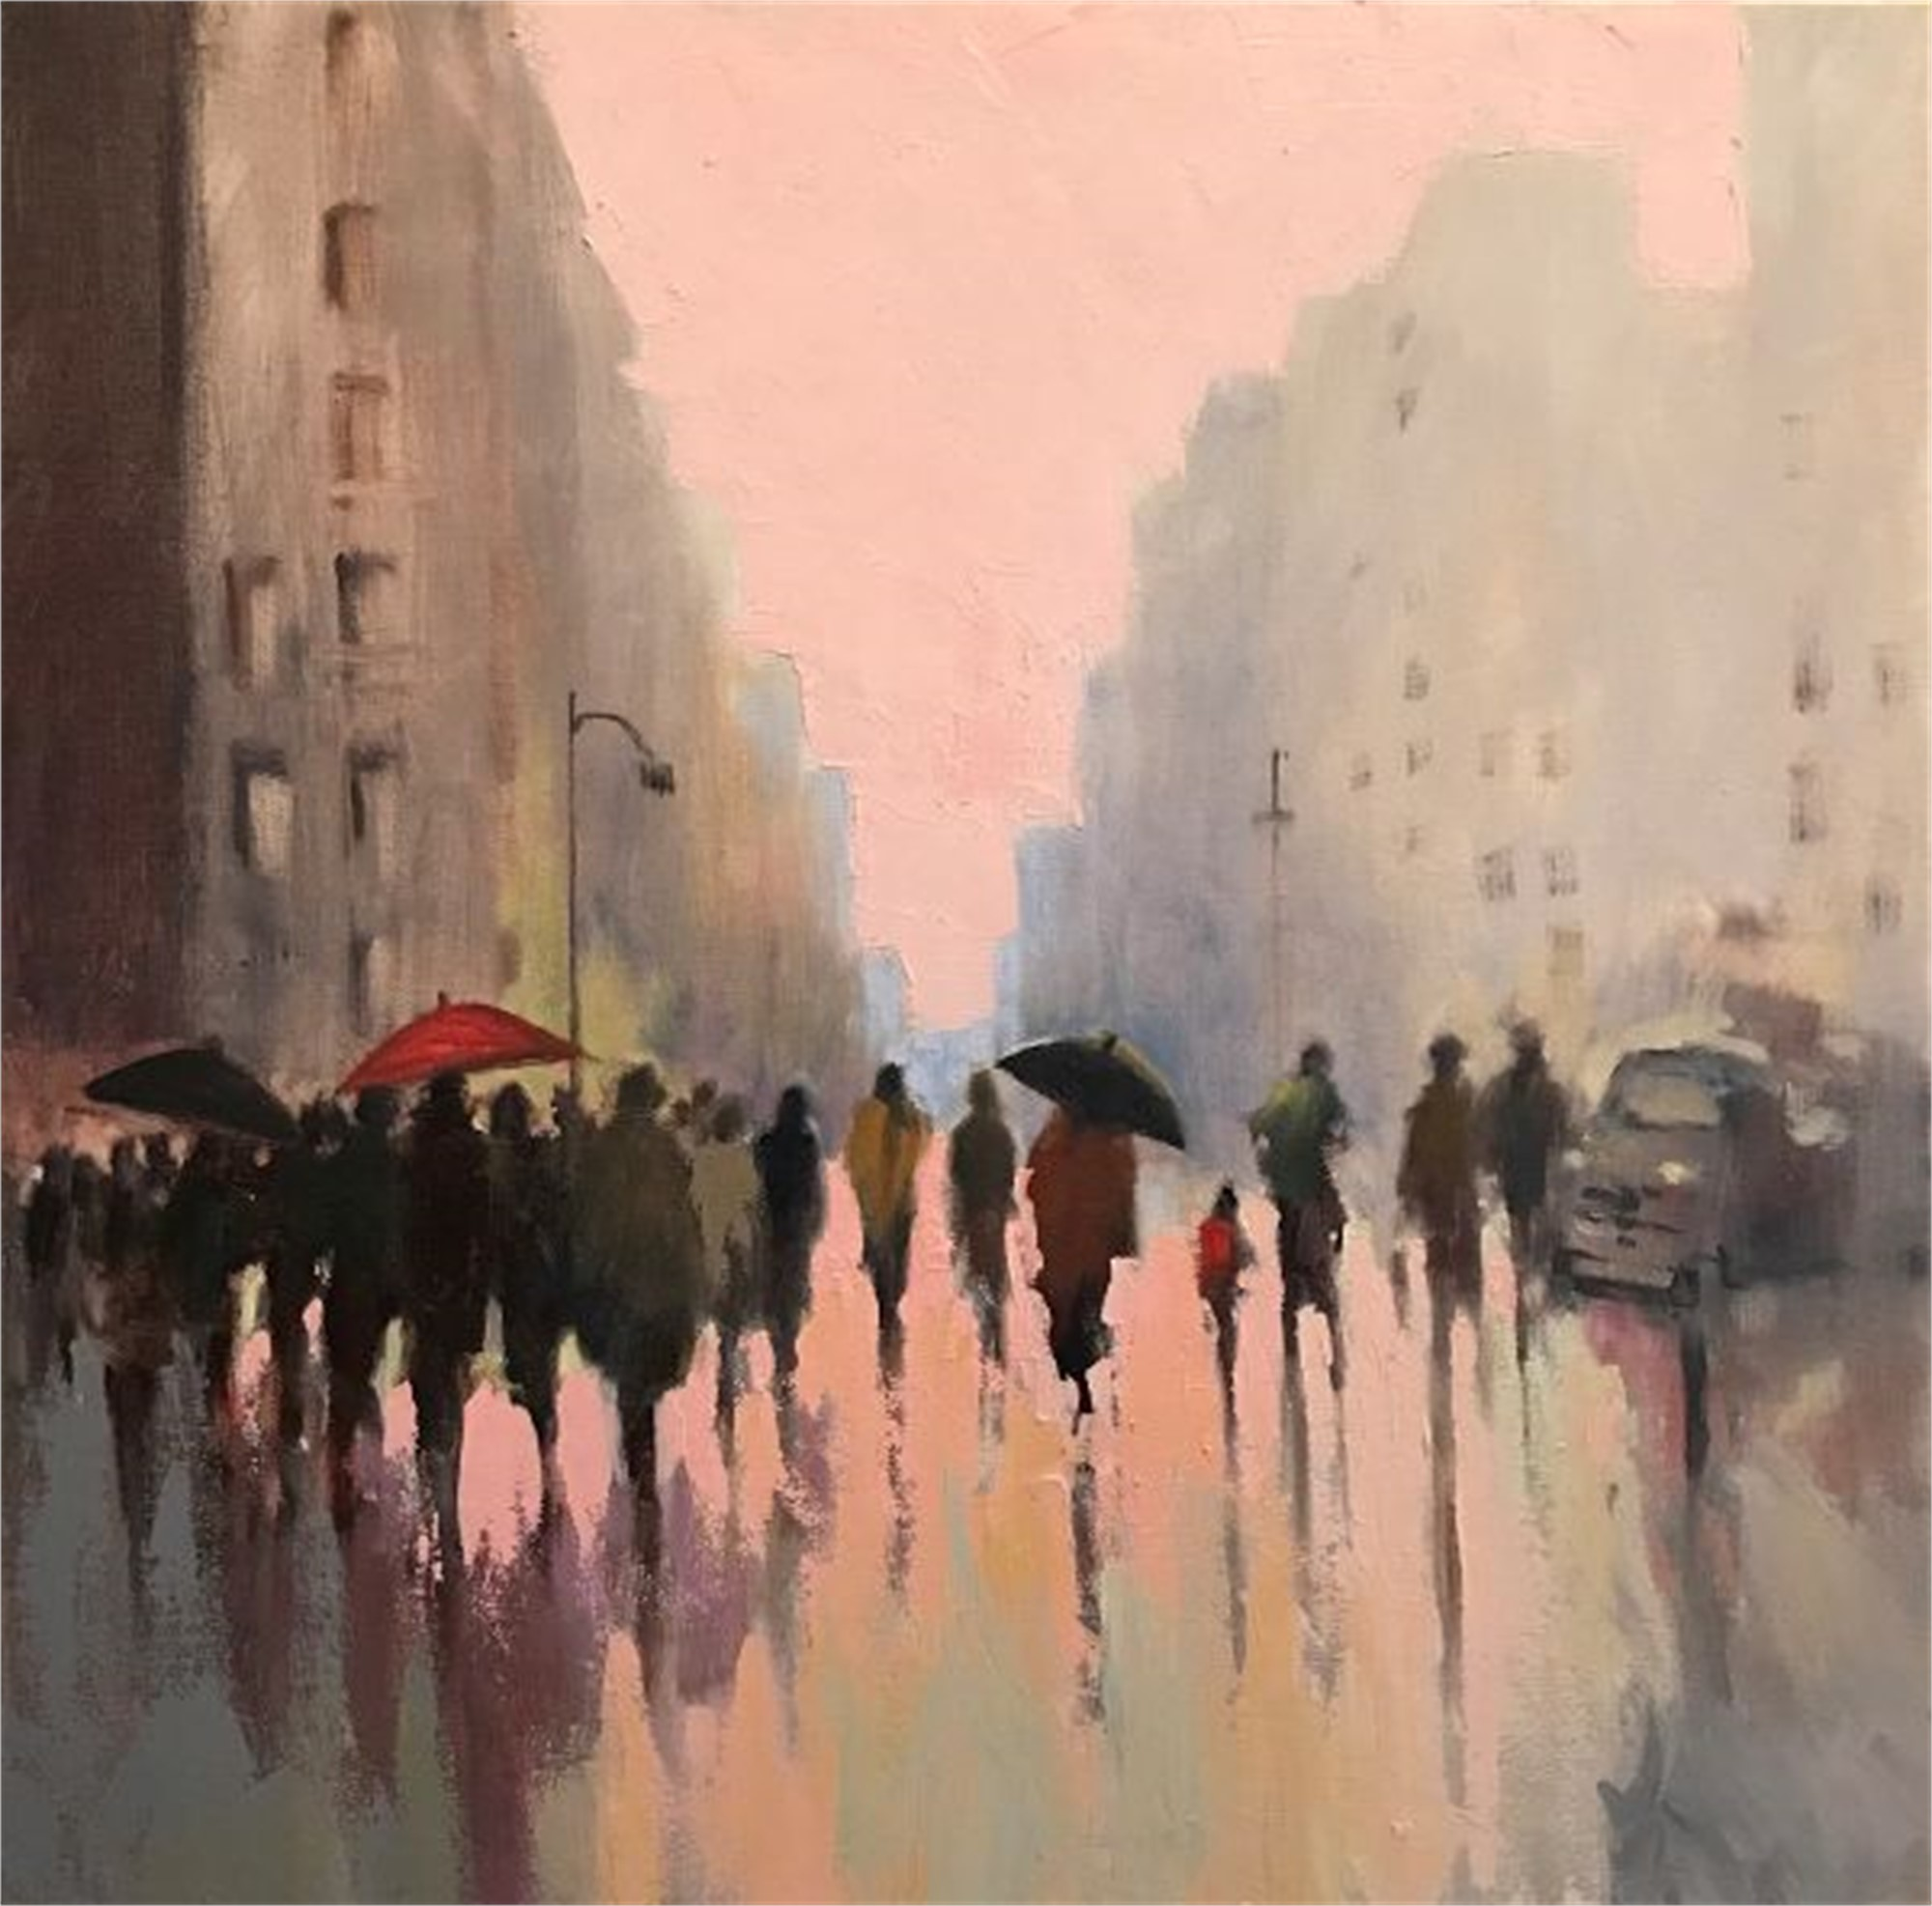 Rain in the City by Betsy Havens